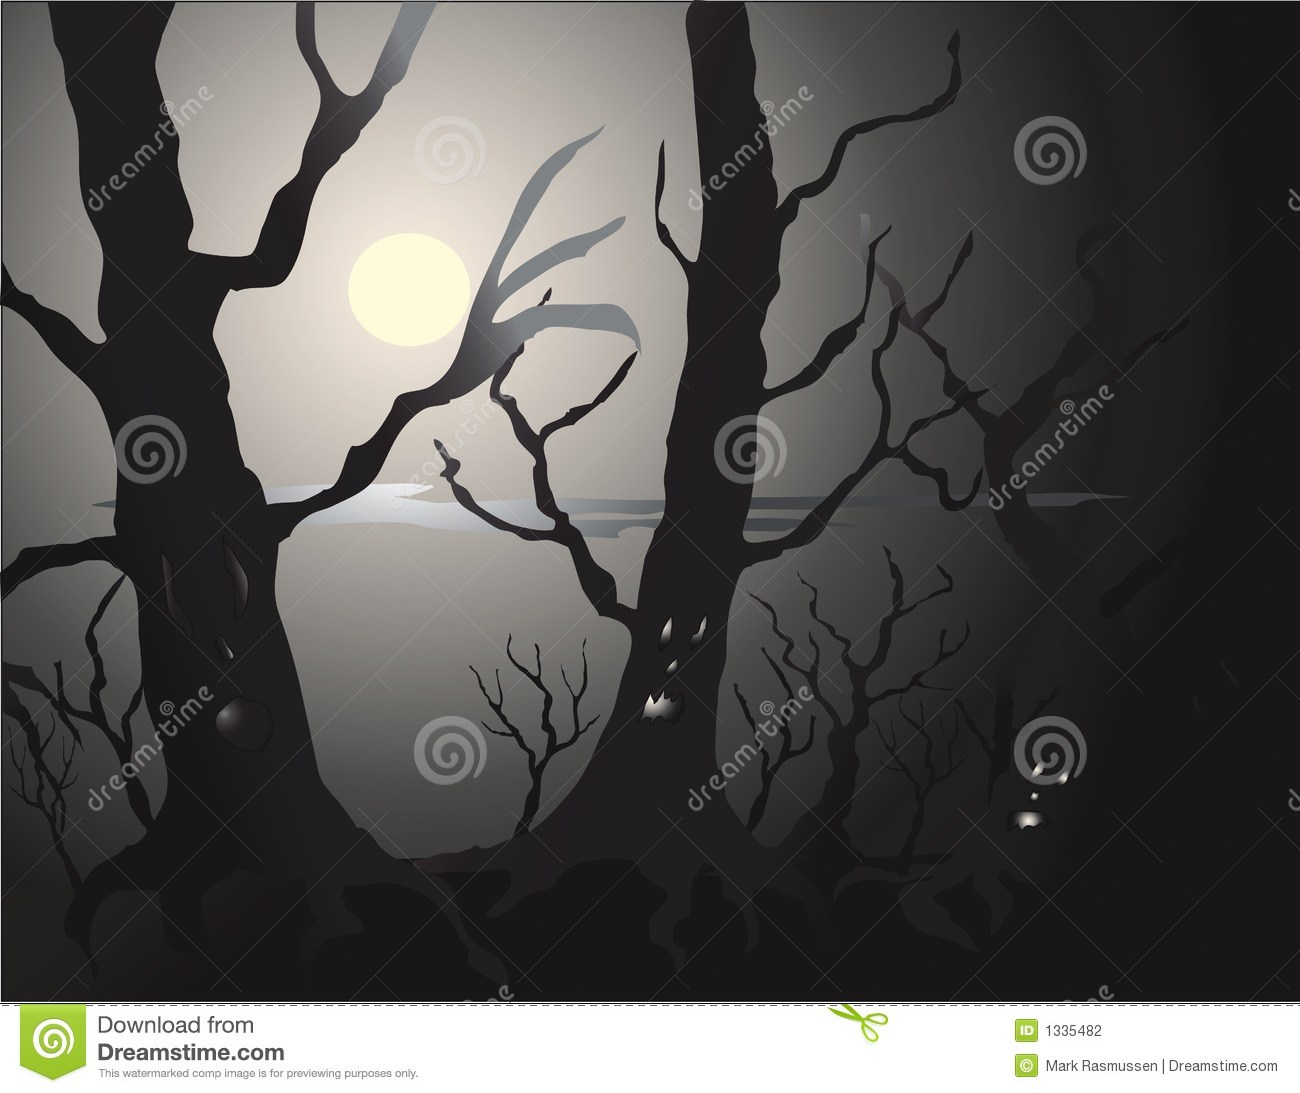 Spooky forest clipart png free download Spooky forest clipart 7 » Clipart Portal png free download